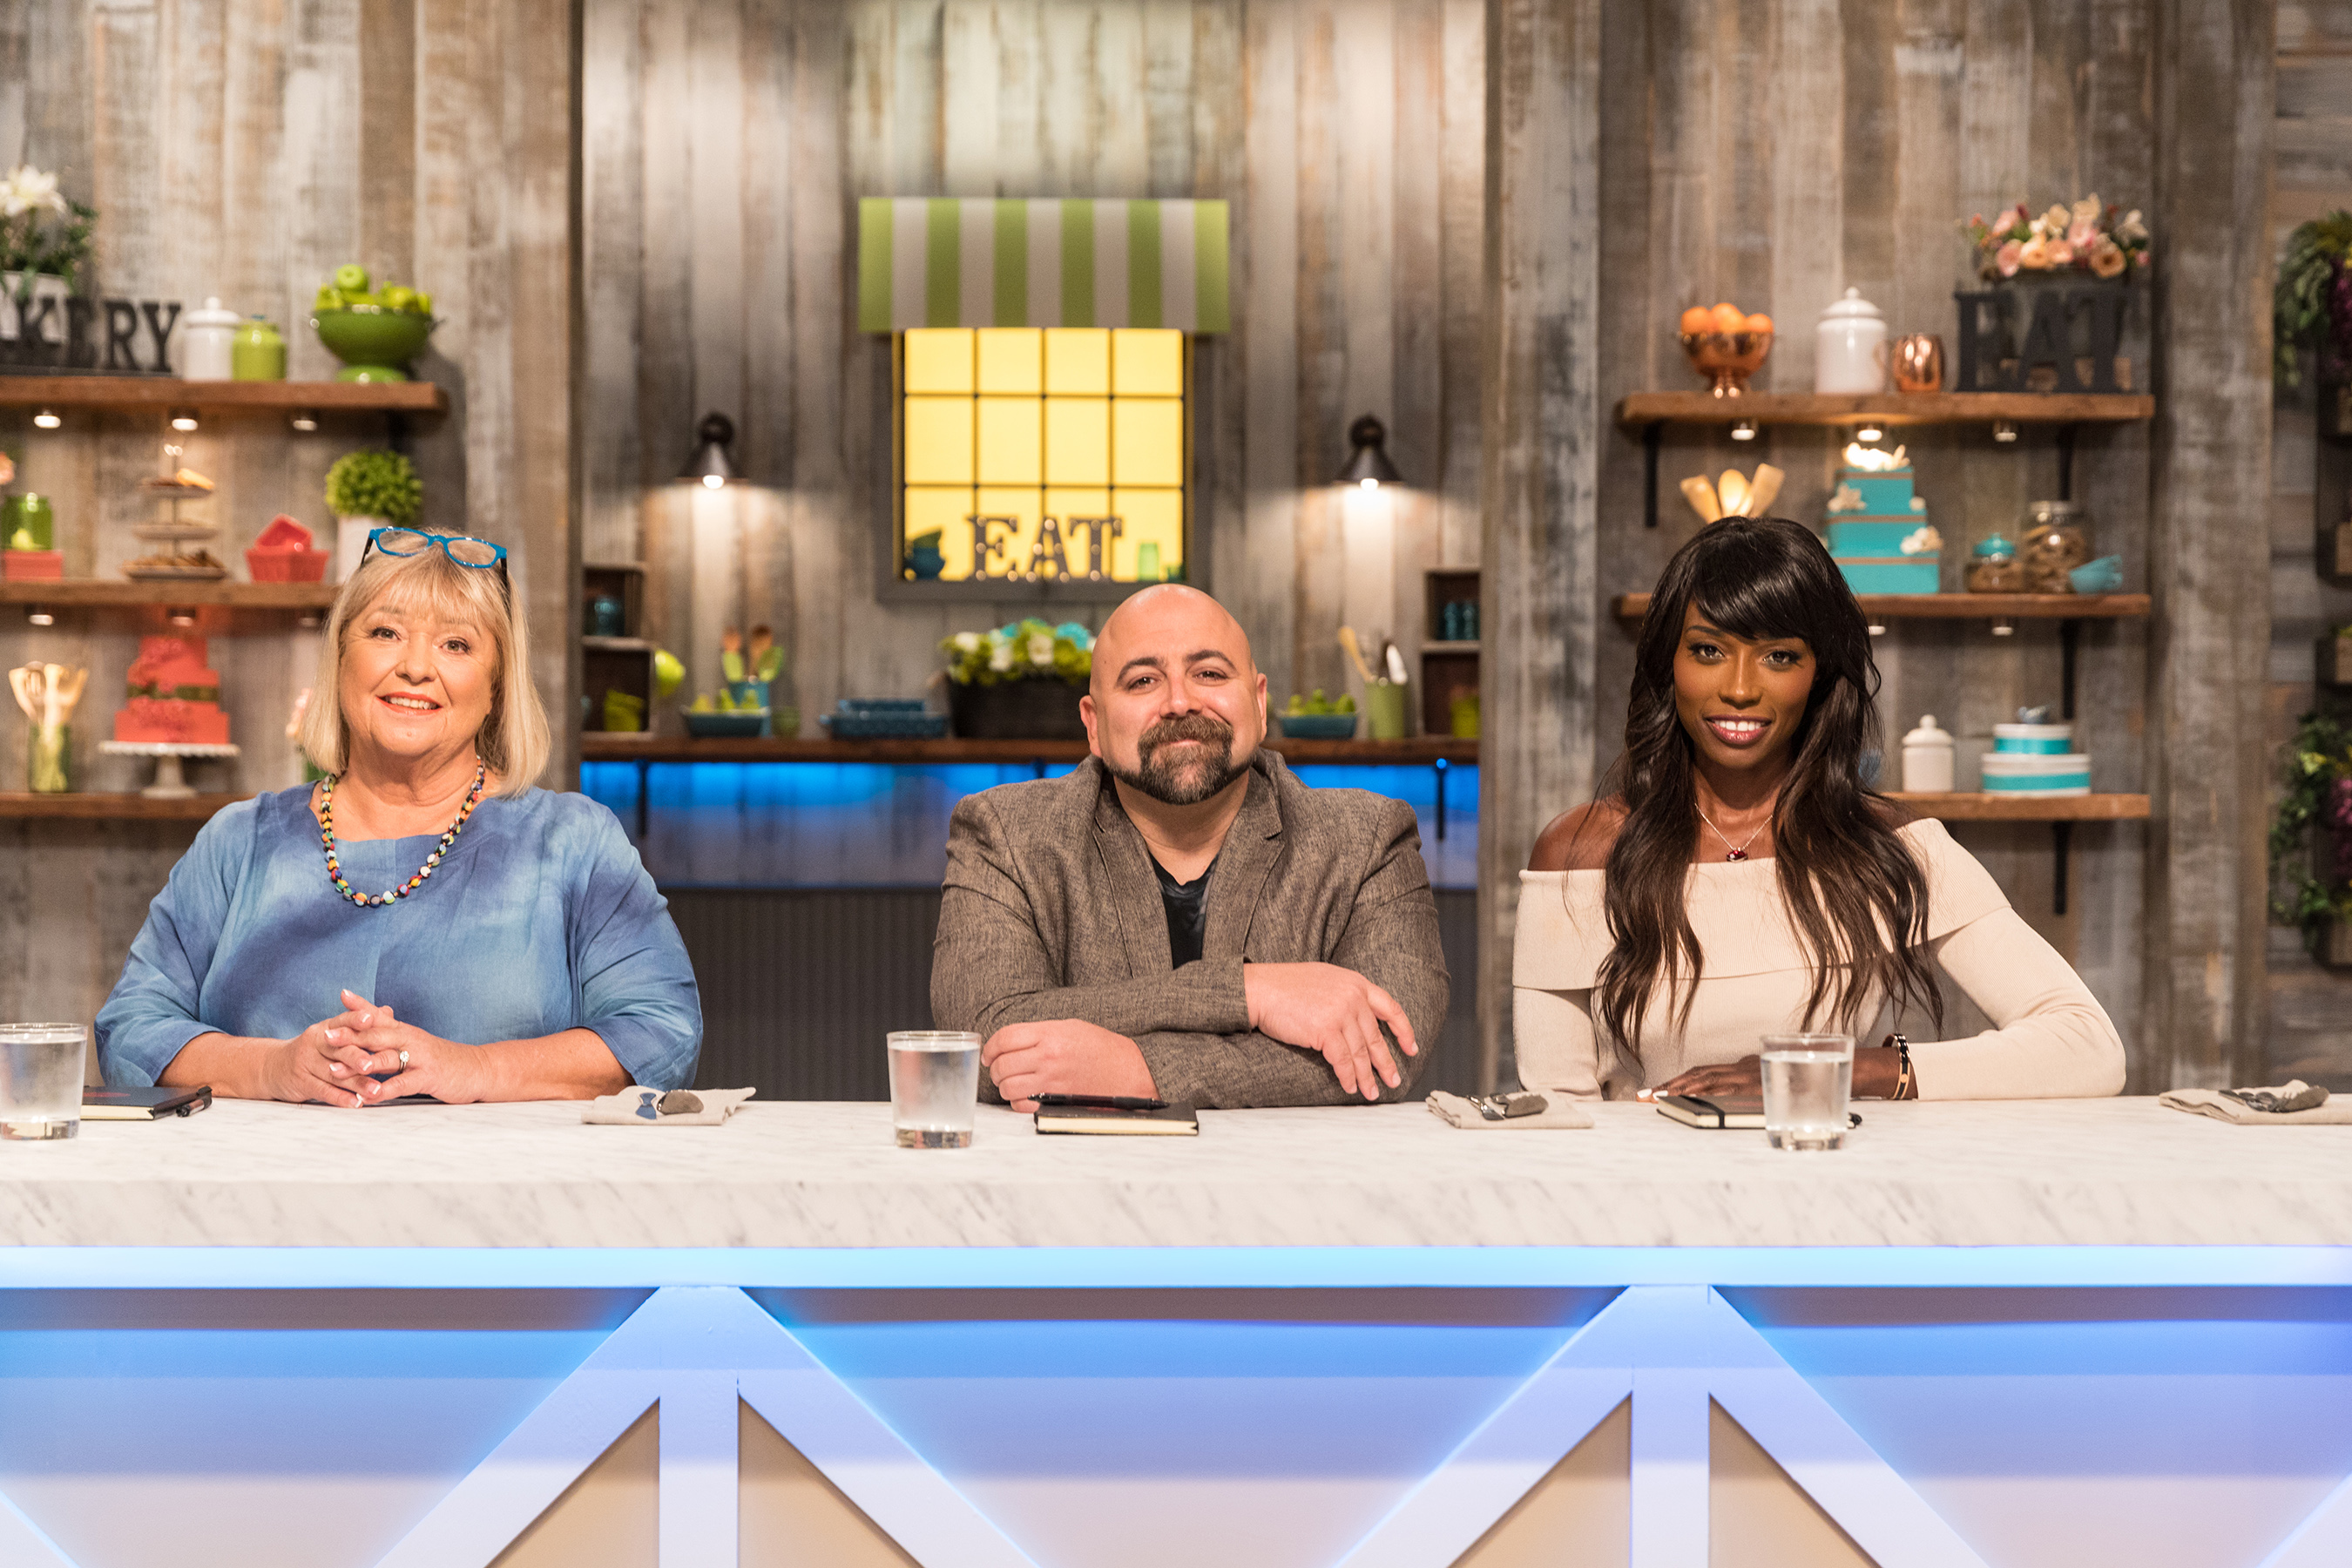 Nancy Fuller, Duff Goldman and Lorraine Pascale, judges on Food Network's Spring Baking Championship